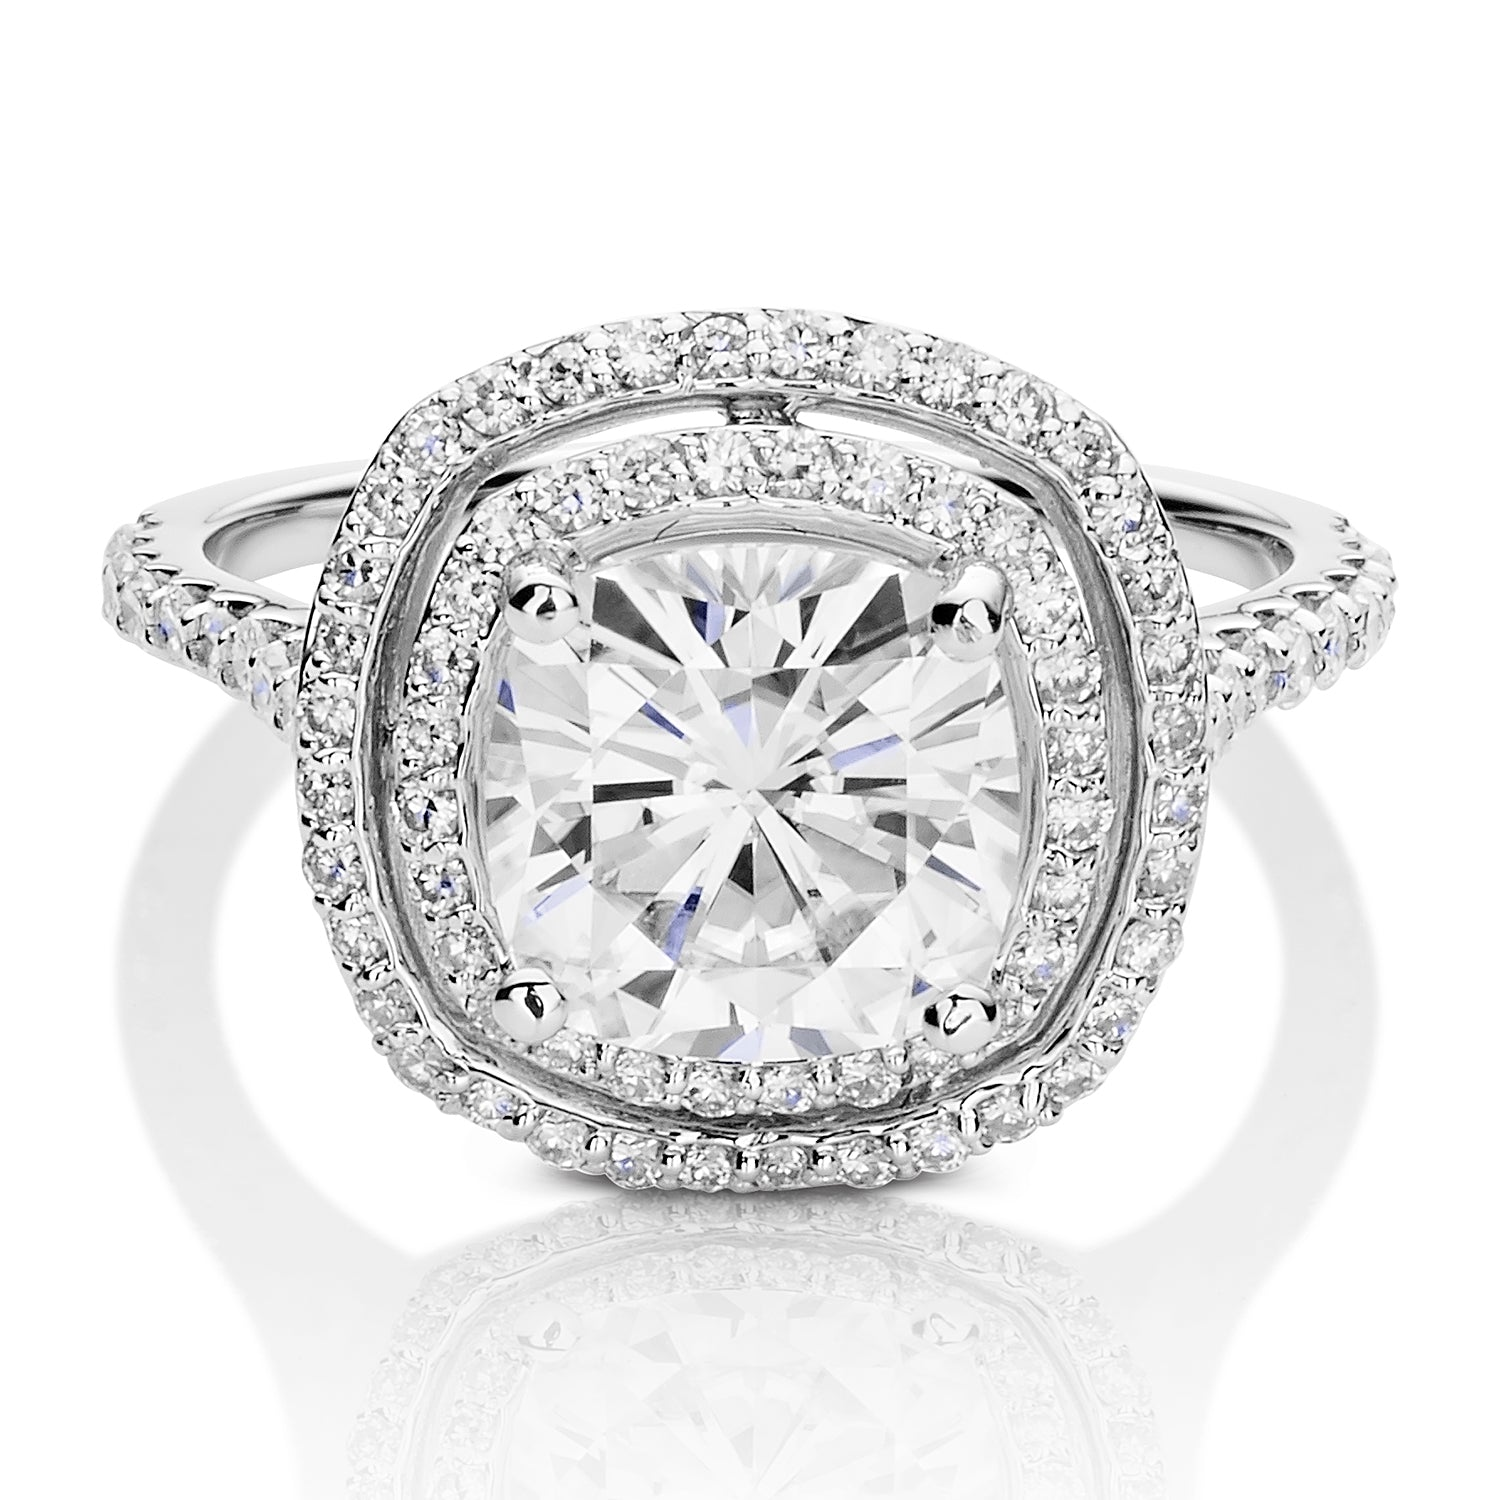 Charles & Colvard Moissanite Cushion Double Halo Ring in White Gold-612947 - Jewelry by Johan